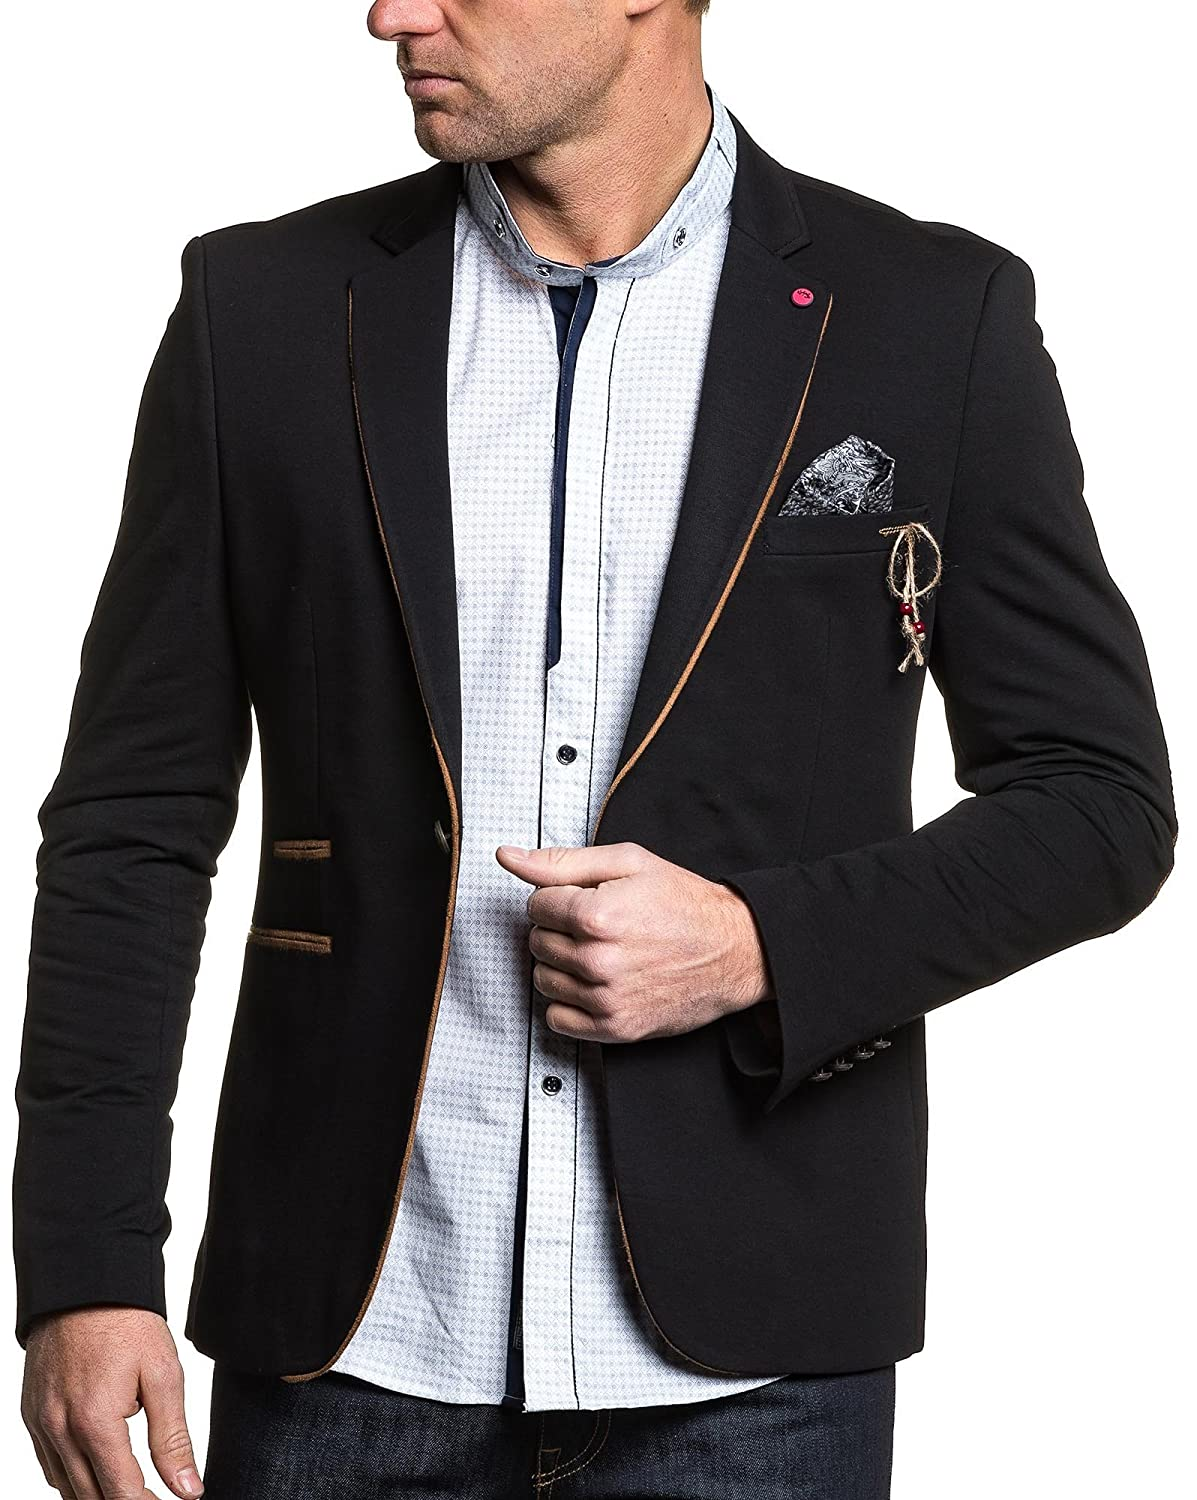 BLZ jeans - Jacket suit black man in chic brown elbow patches